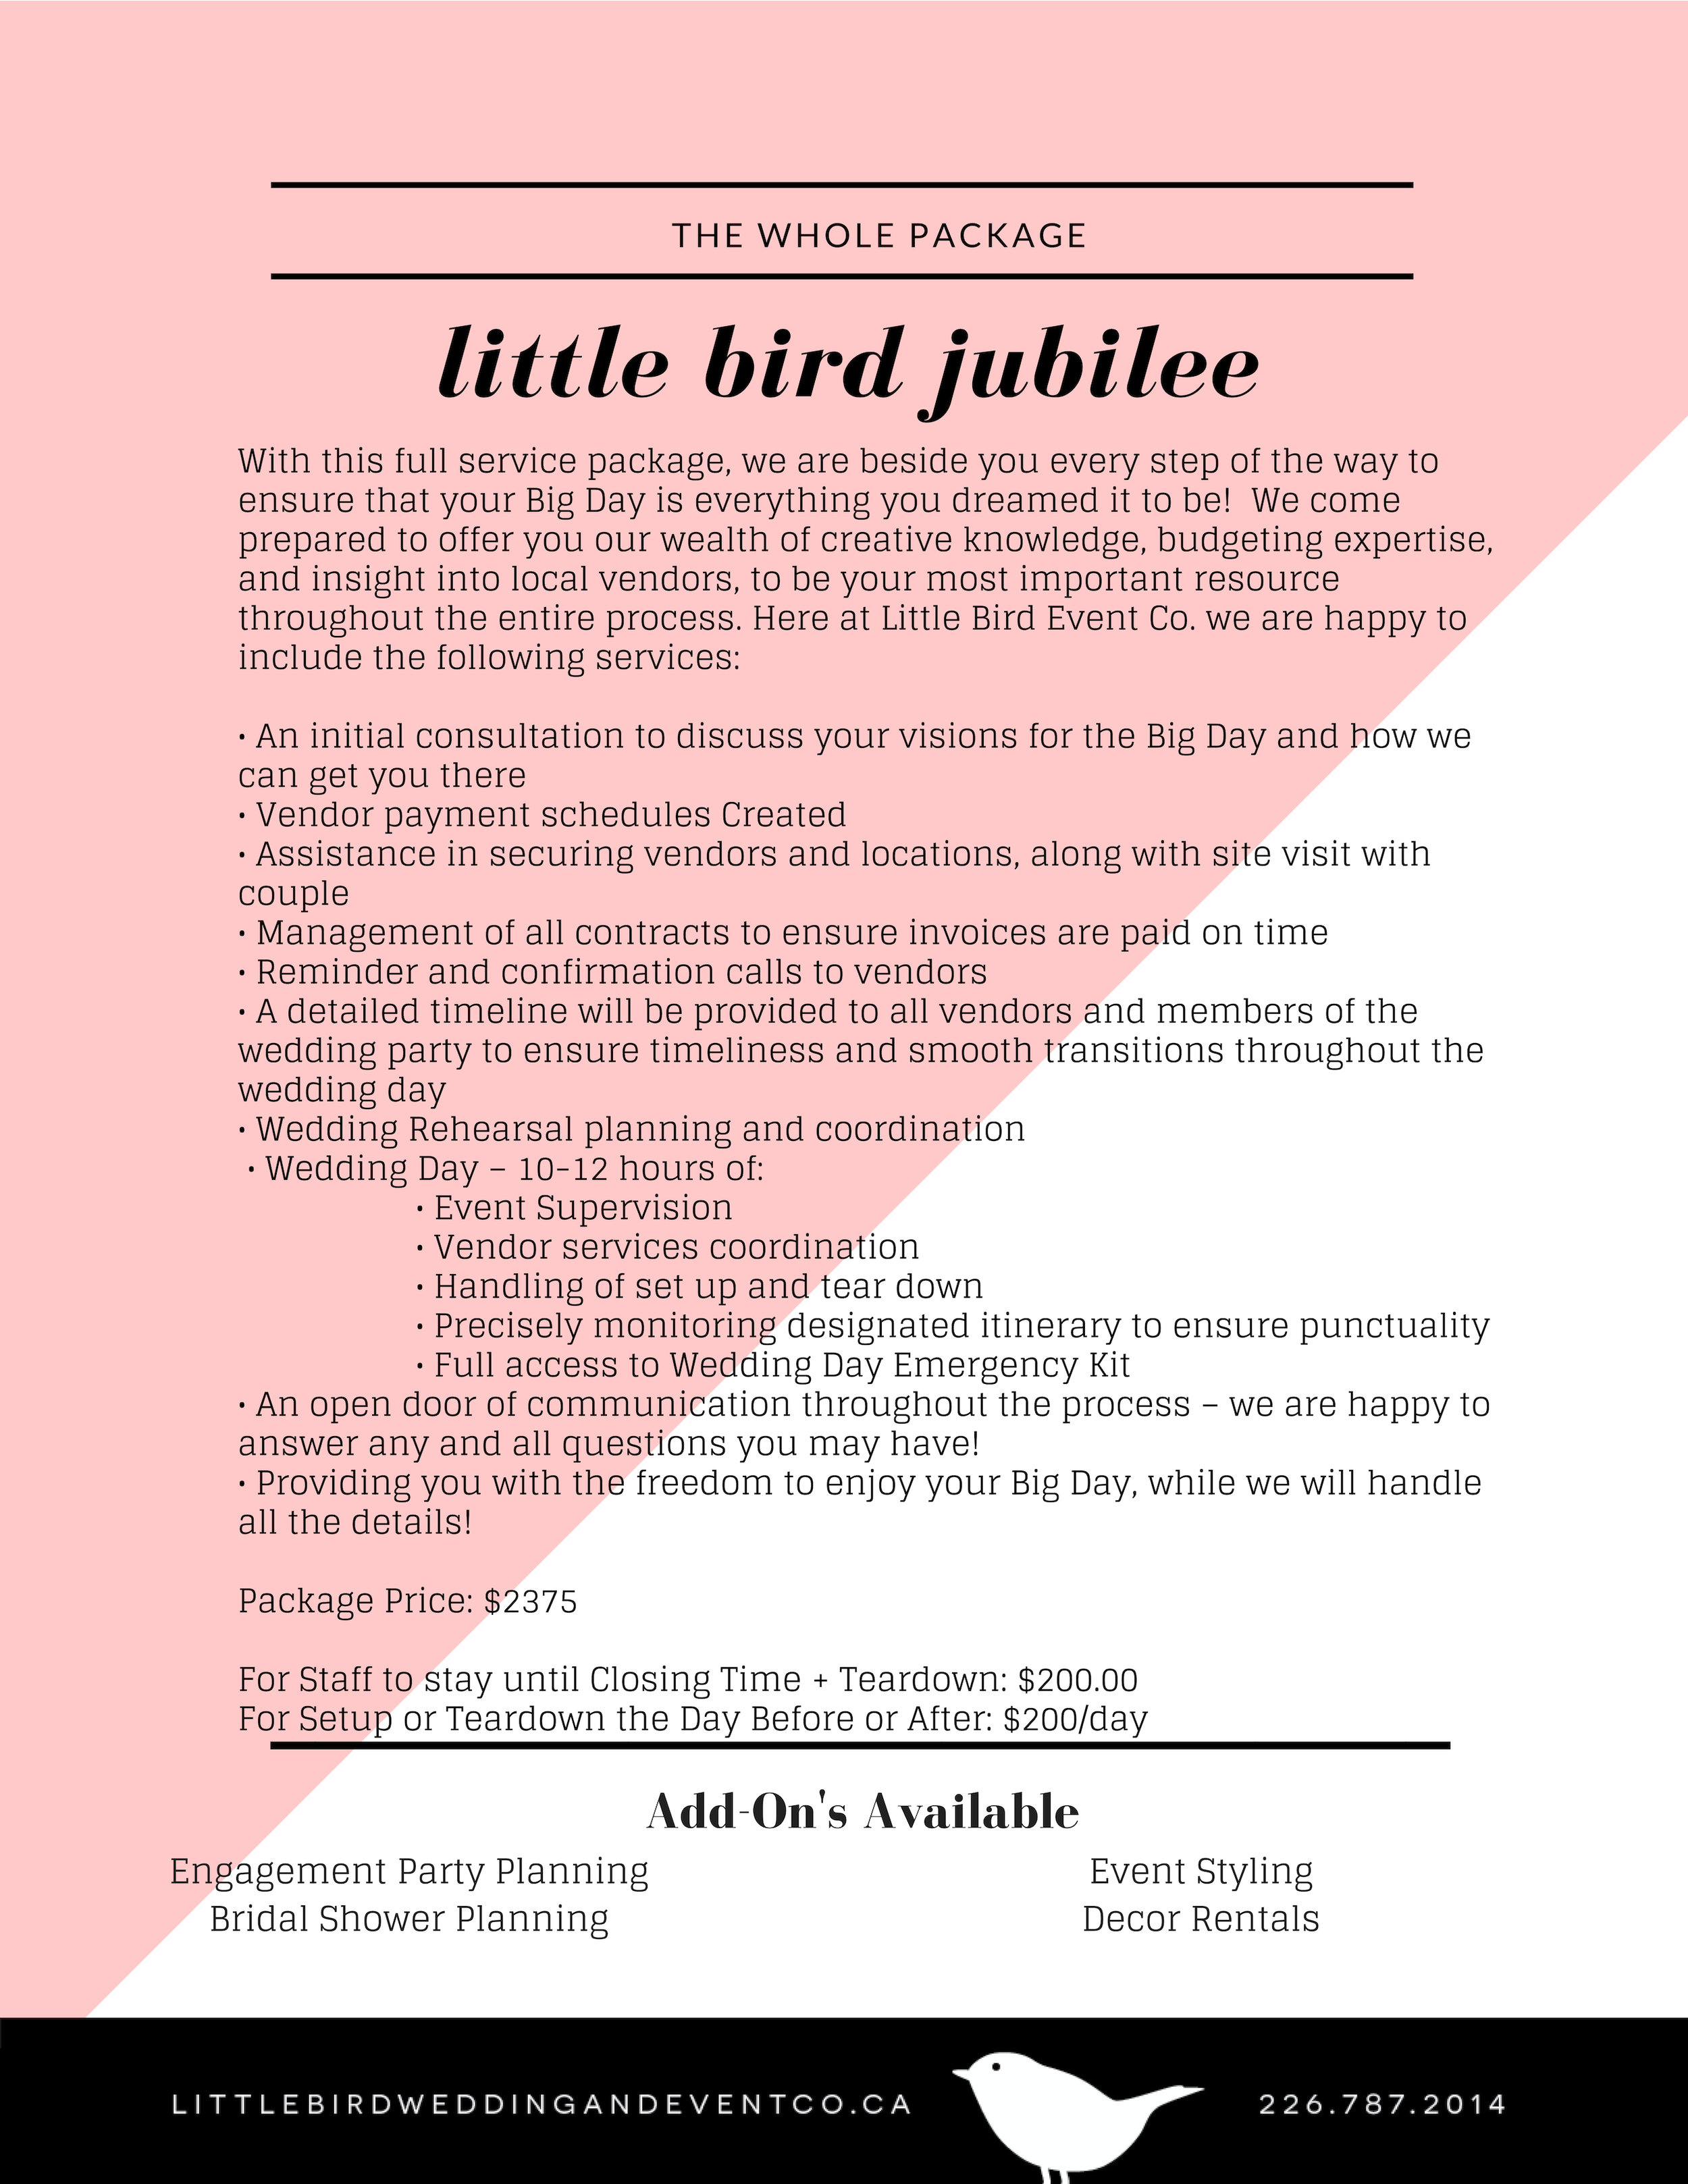 Little Bird Jubilee Pricing 2019 - NEW.jpg